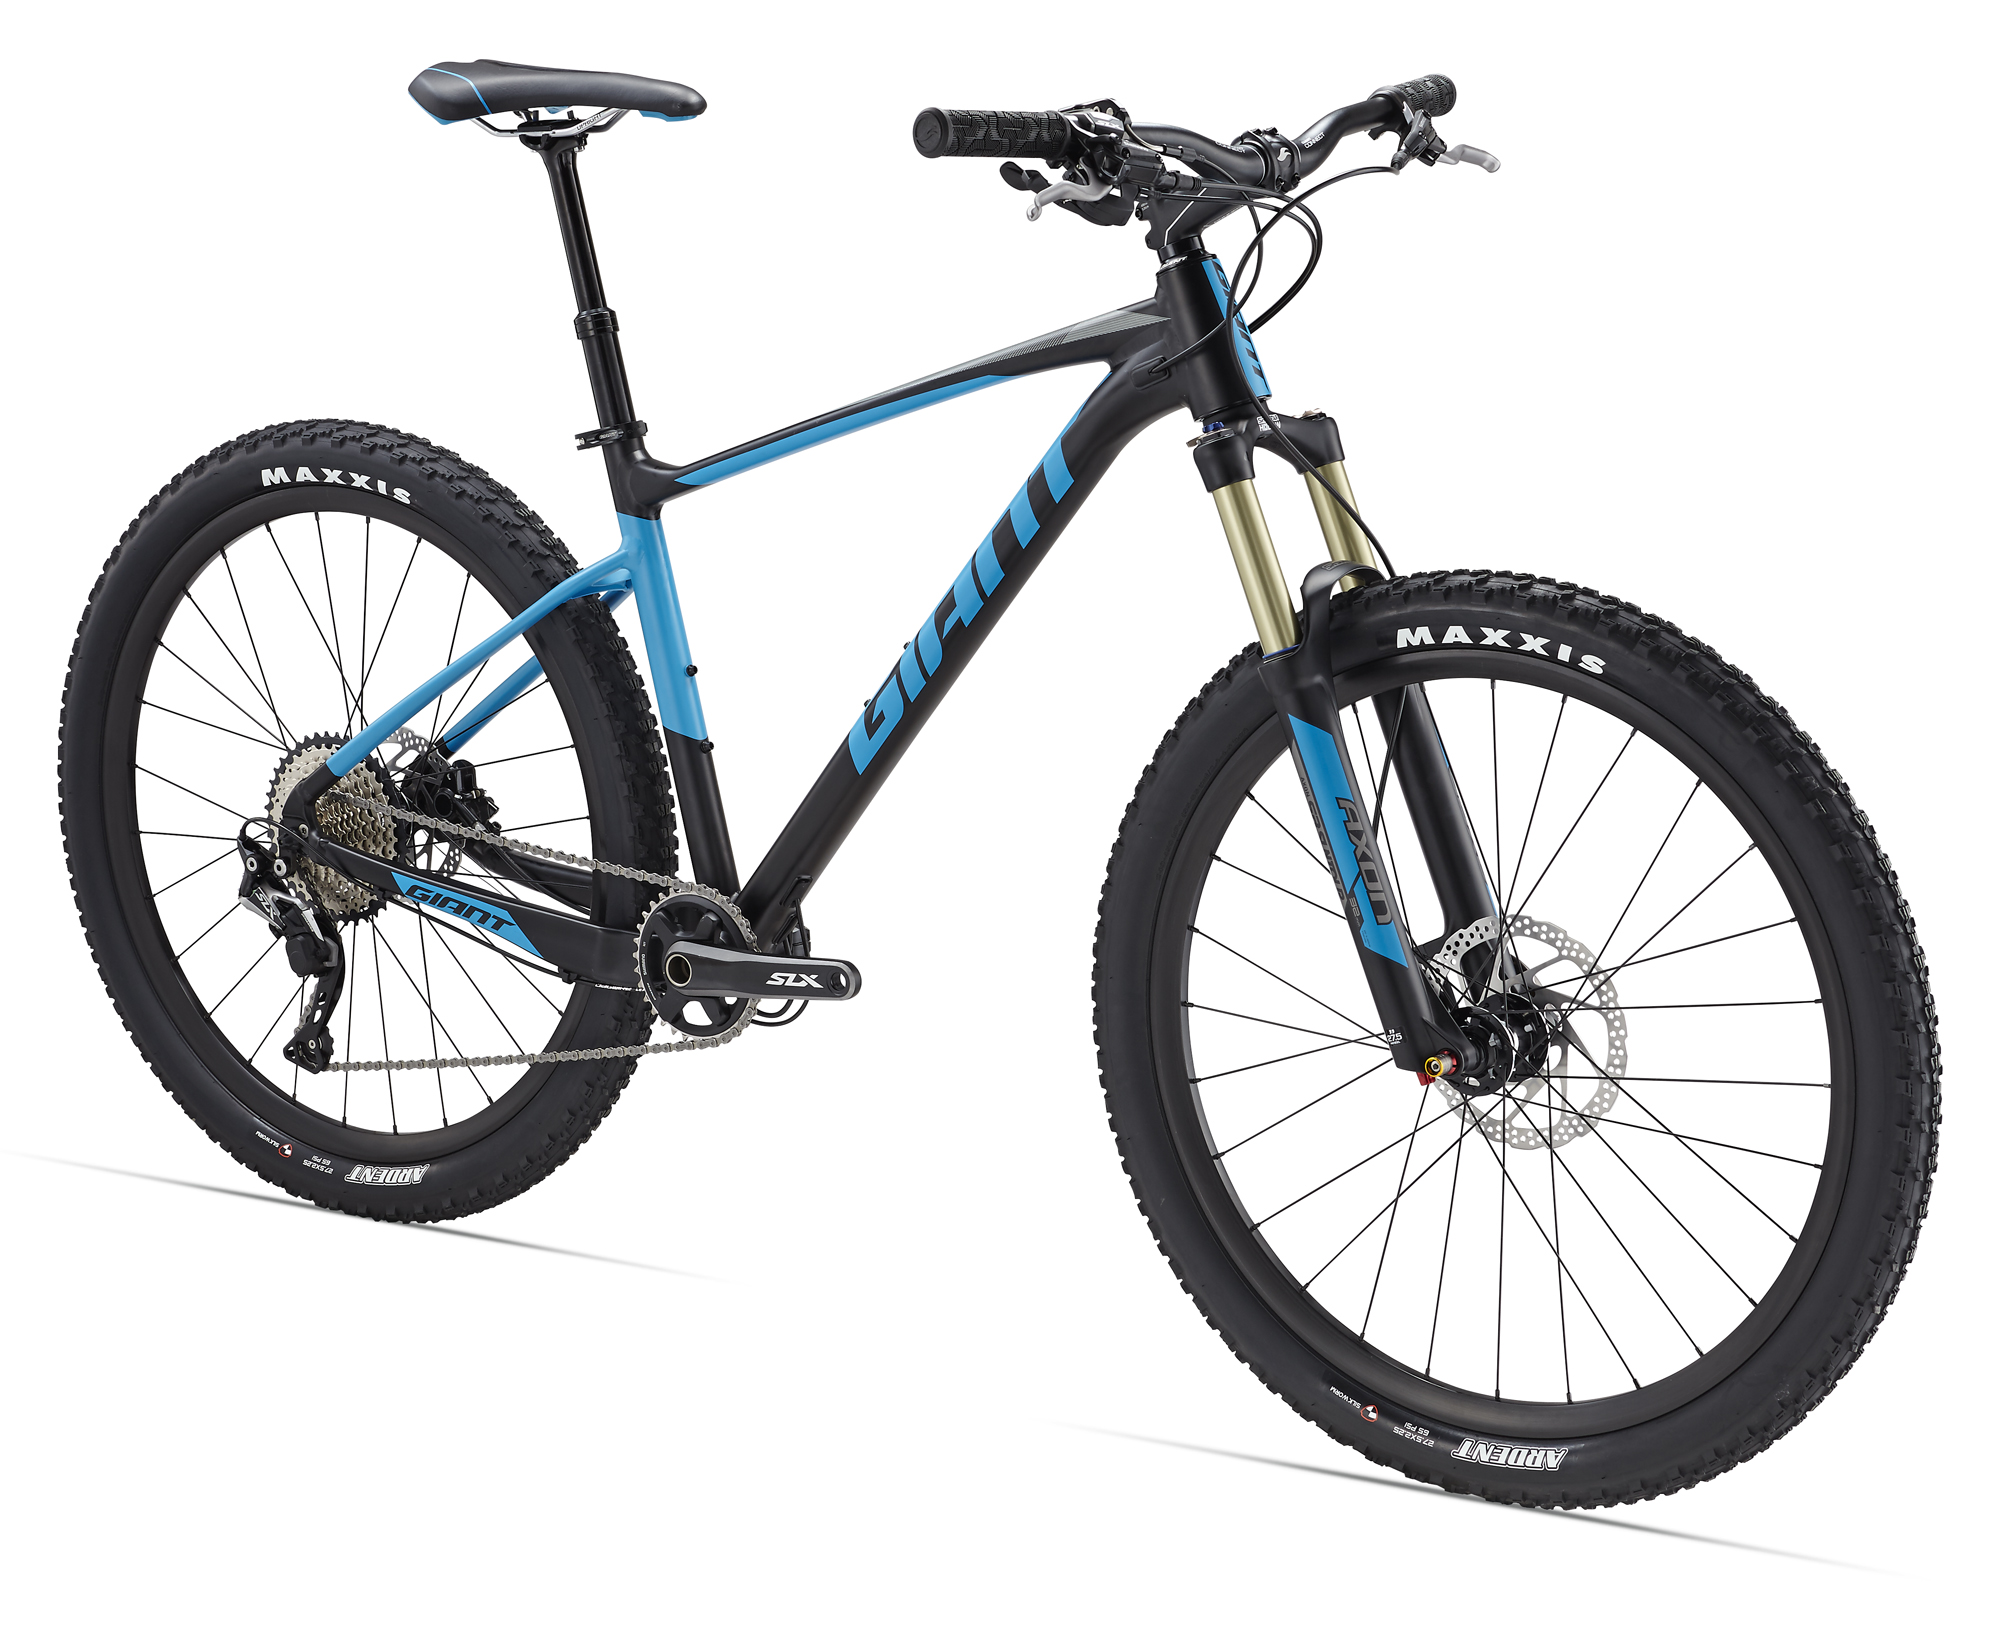 The Fathom 27.5 features a trail oriented geometry.